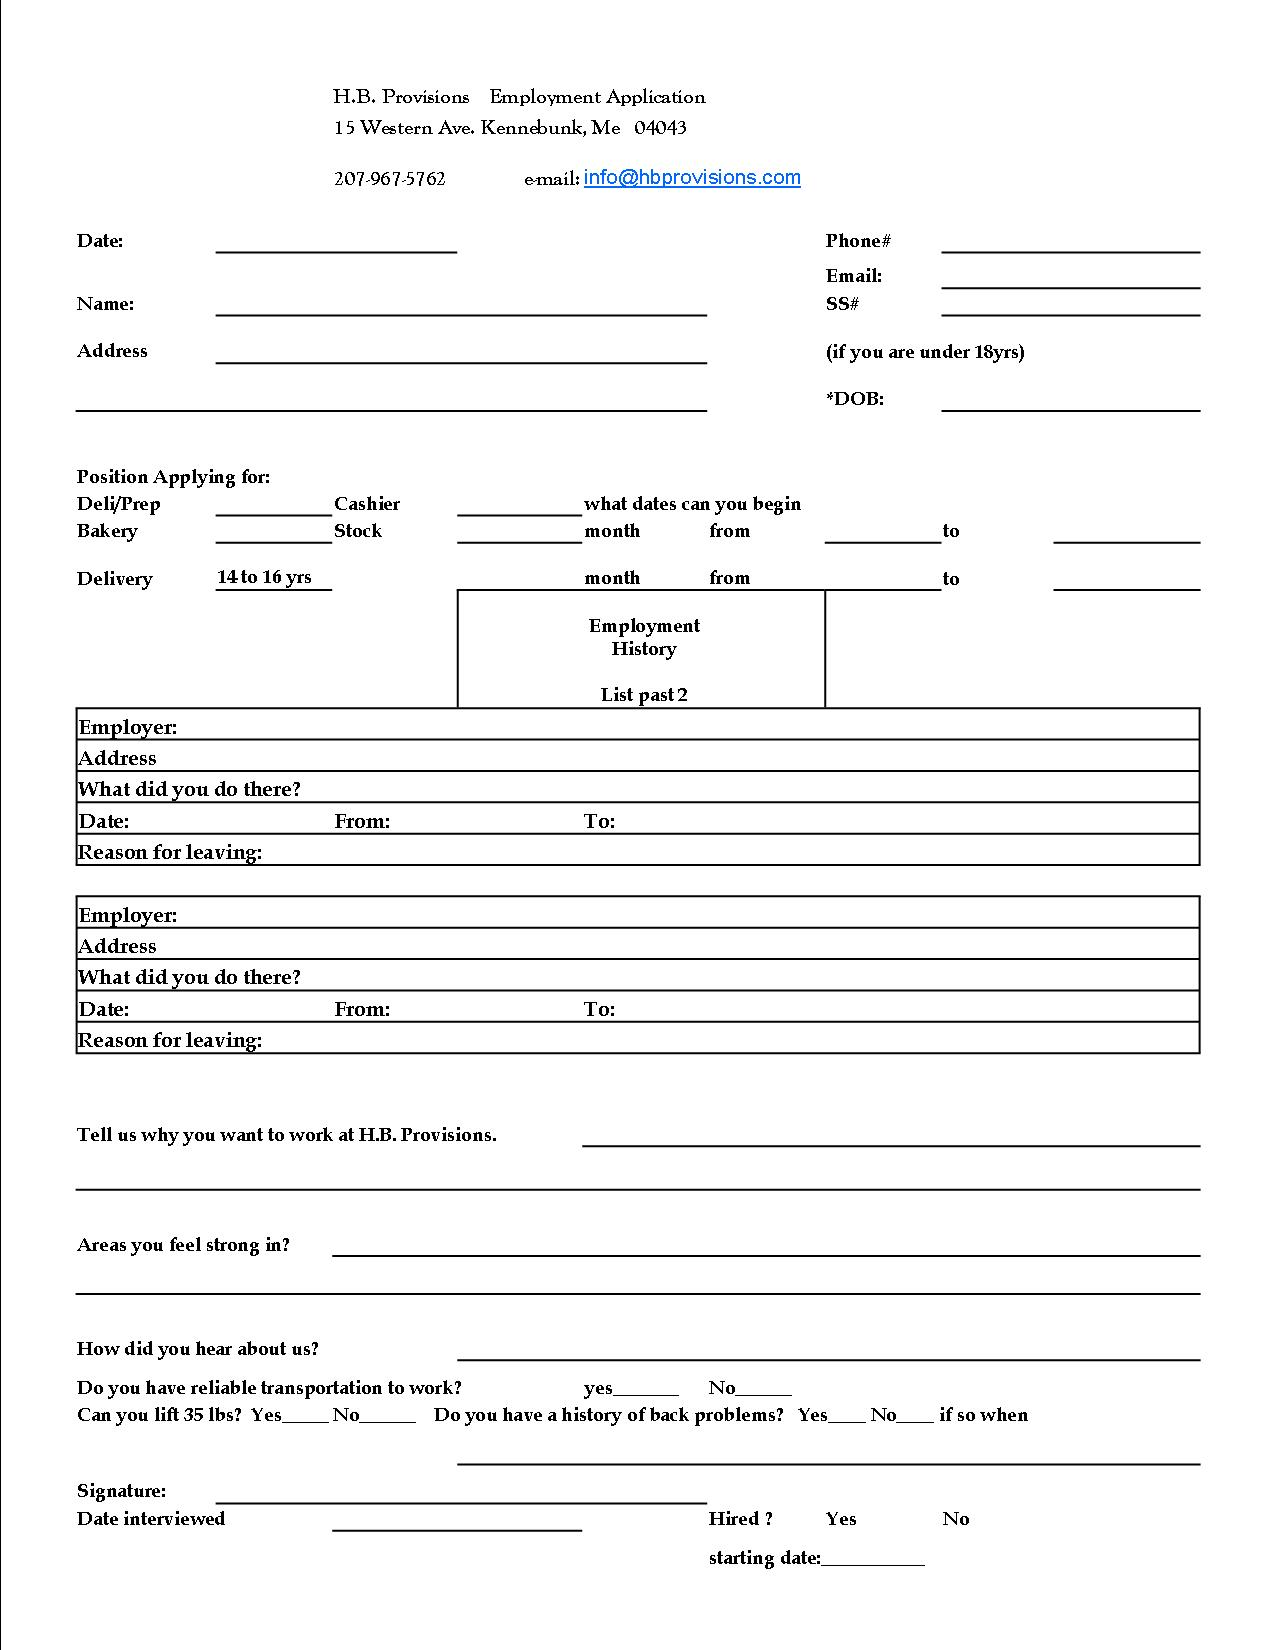 help wanted h b provisions fill out the application below and follow up a call to eric the next day